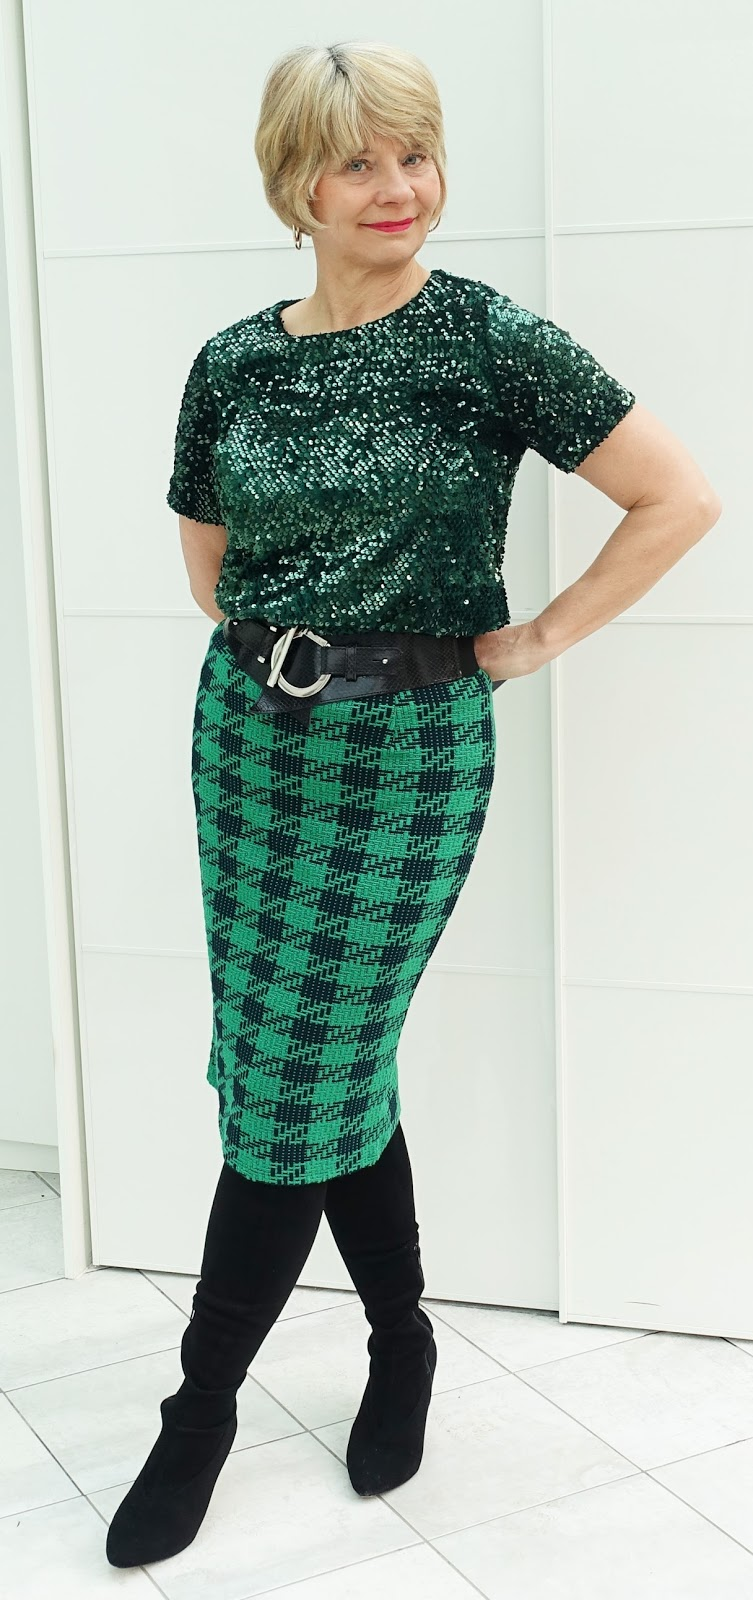 Image showing over 45s blogger Gail Hanlon wearing sequins for the daytime.  A green sequin top is worn with a green and black skirt, wide black belt and black boots.